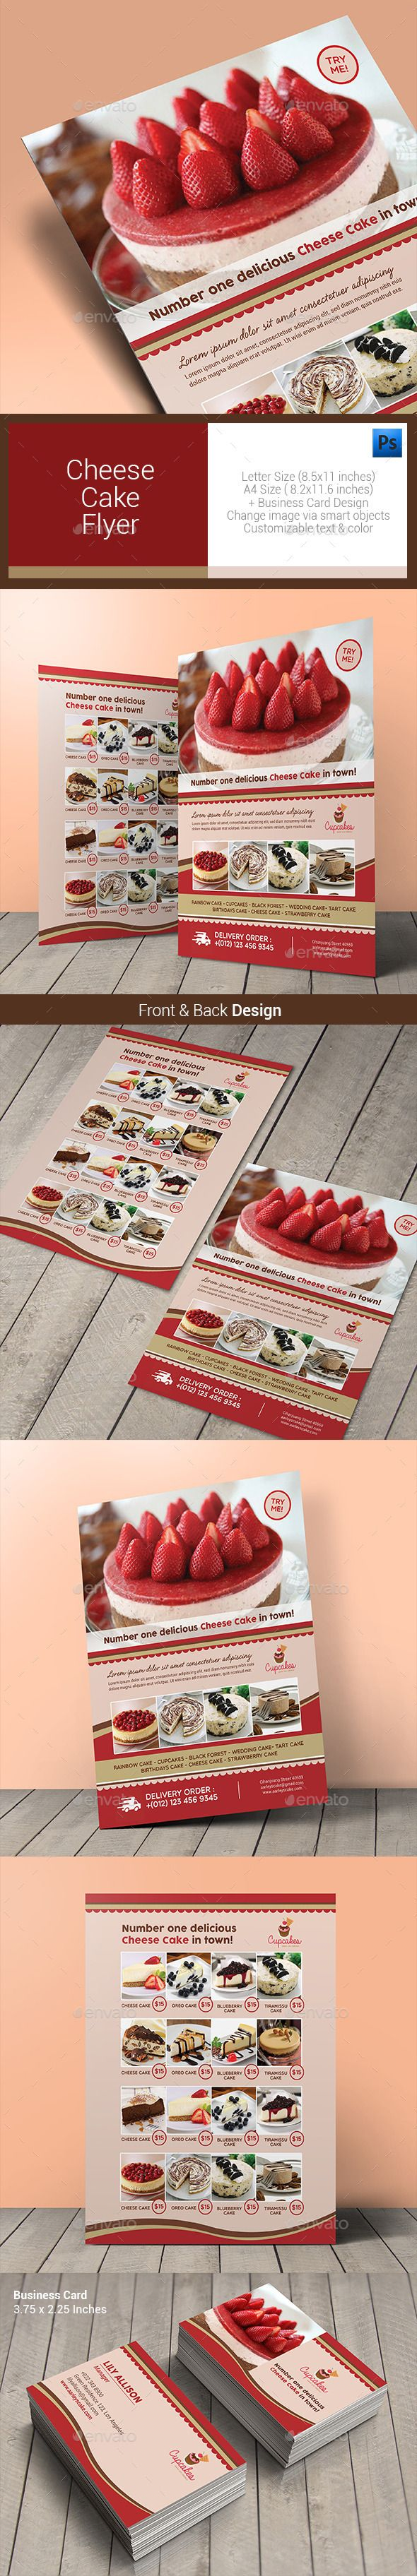 Cheese Cake Menu Flyer Template #menudesign #print  Download: http://graphicriver.net/item/cheese-cake-menu-flyer/10640856?ref=ksioks